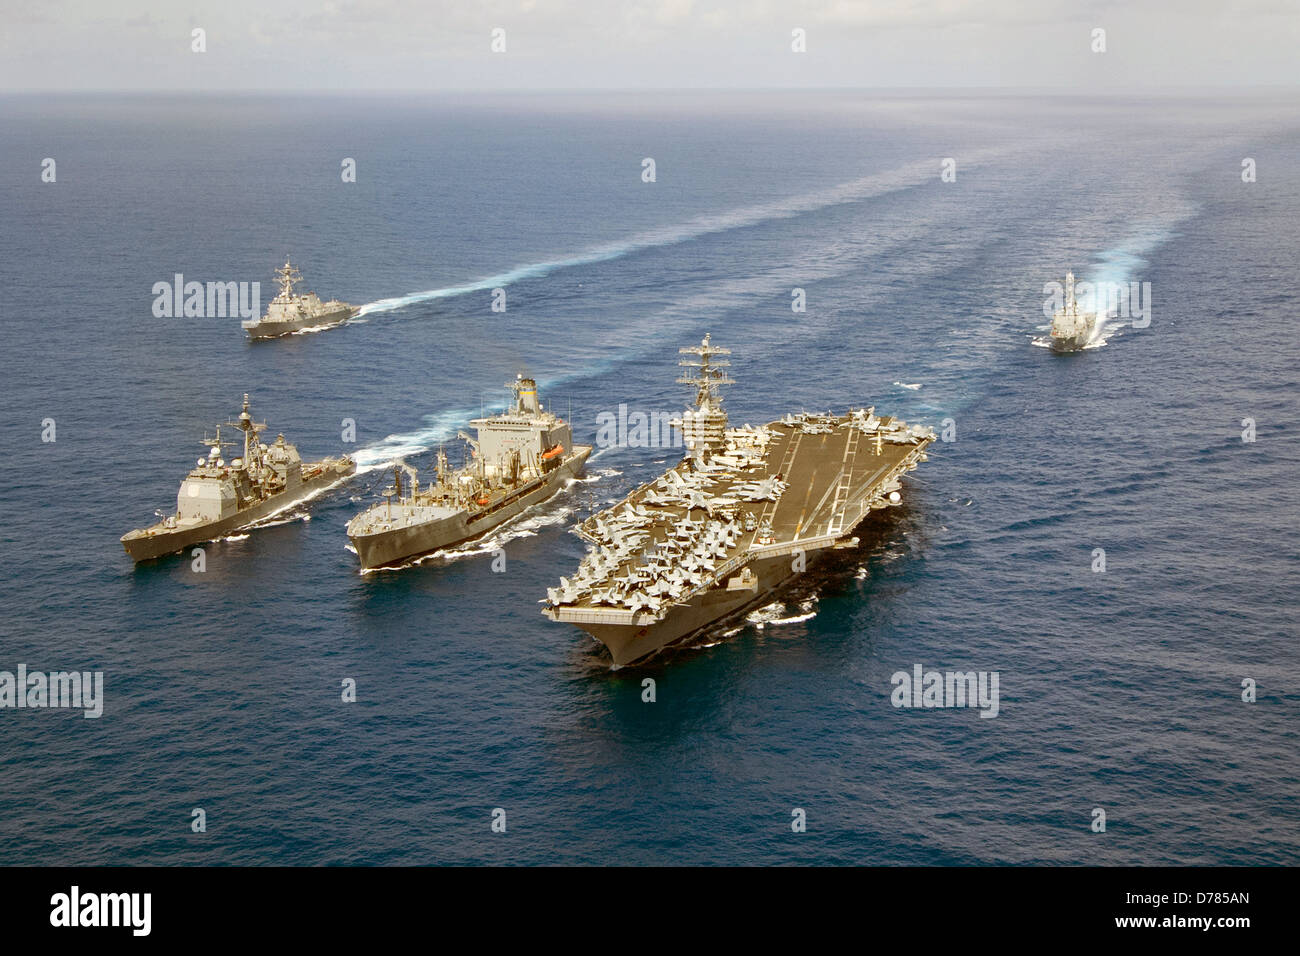 US Navy guided-missile cruiser USS Princeton, Military Sealift Command fleet replenishment oiler USNS Guadalupe, - Stock Image